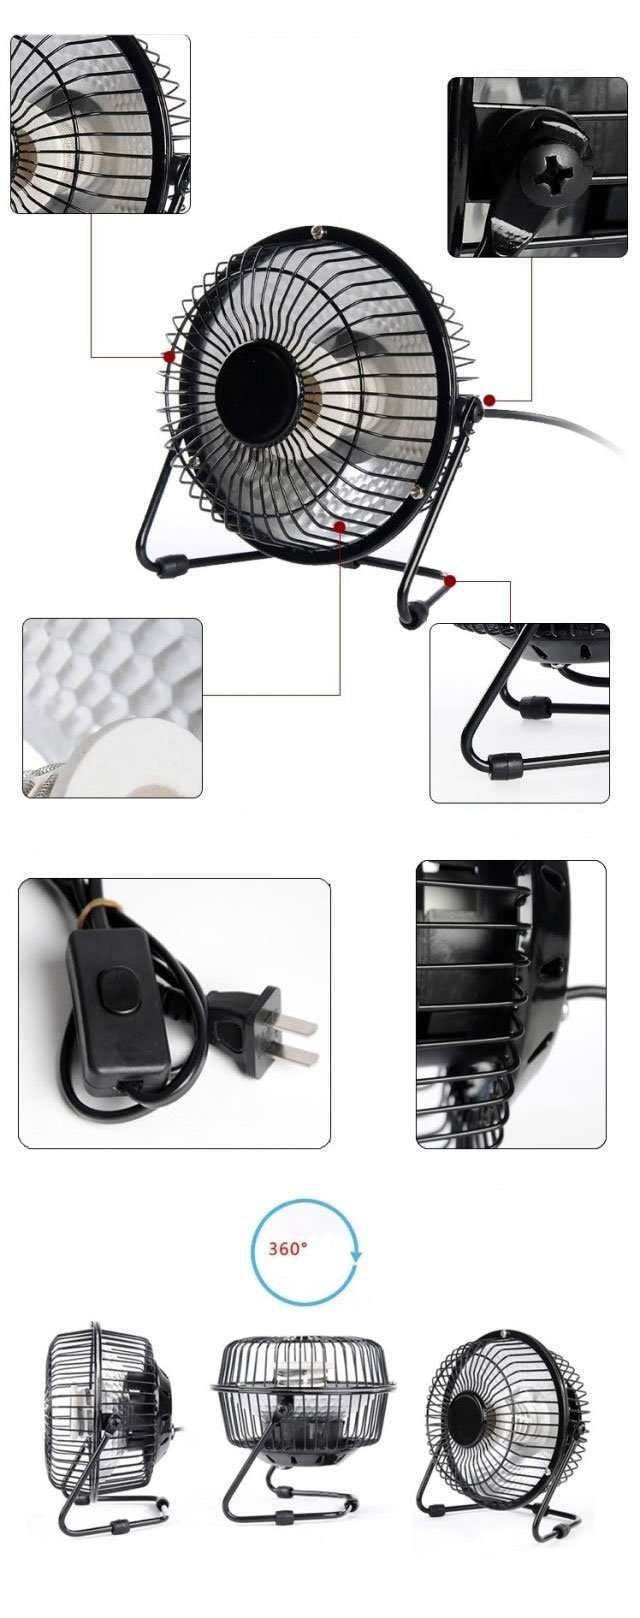 Portable Desktop Mini Electric Heater details